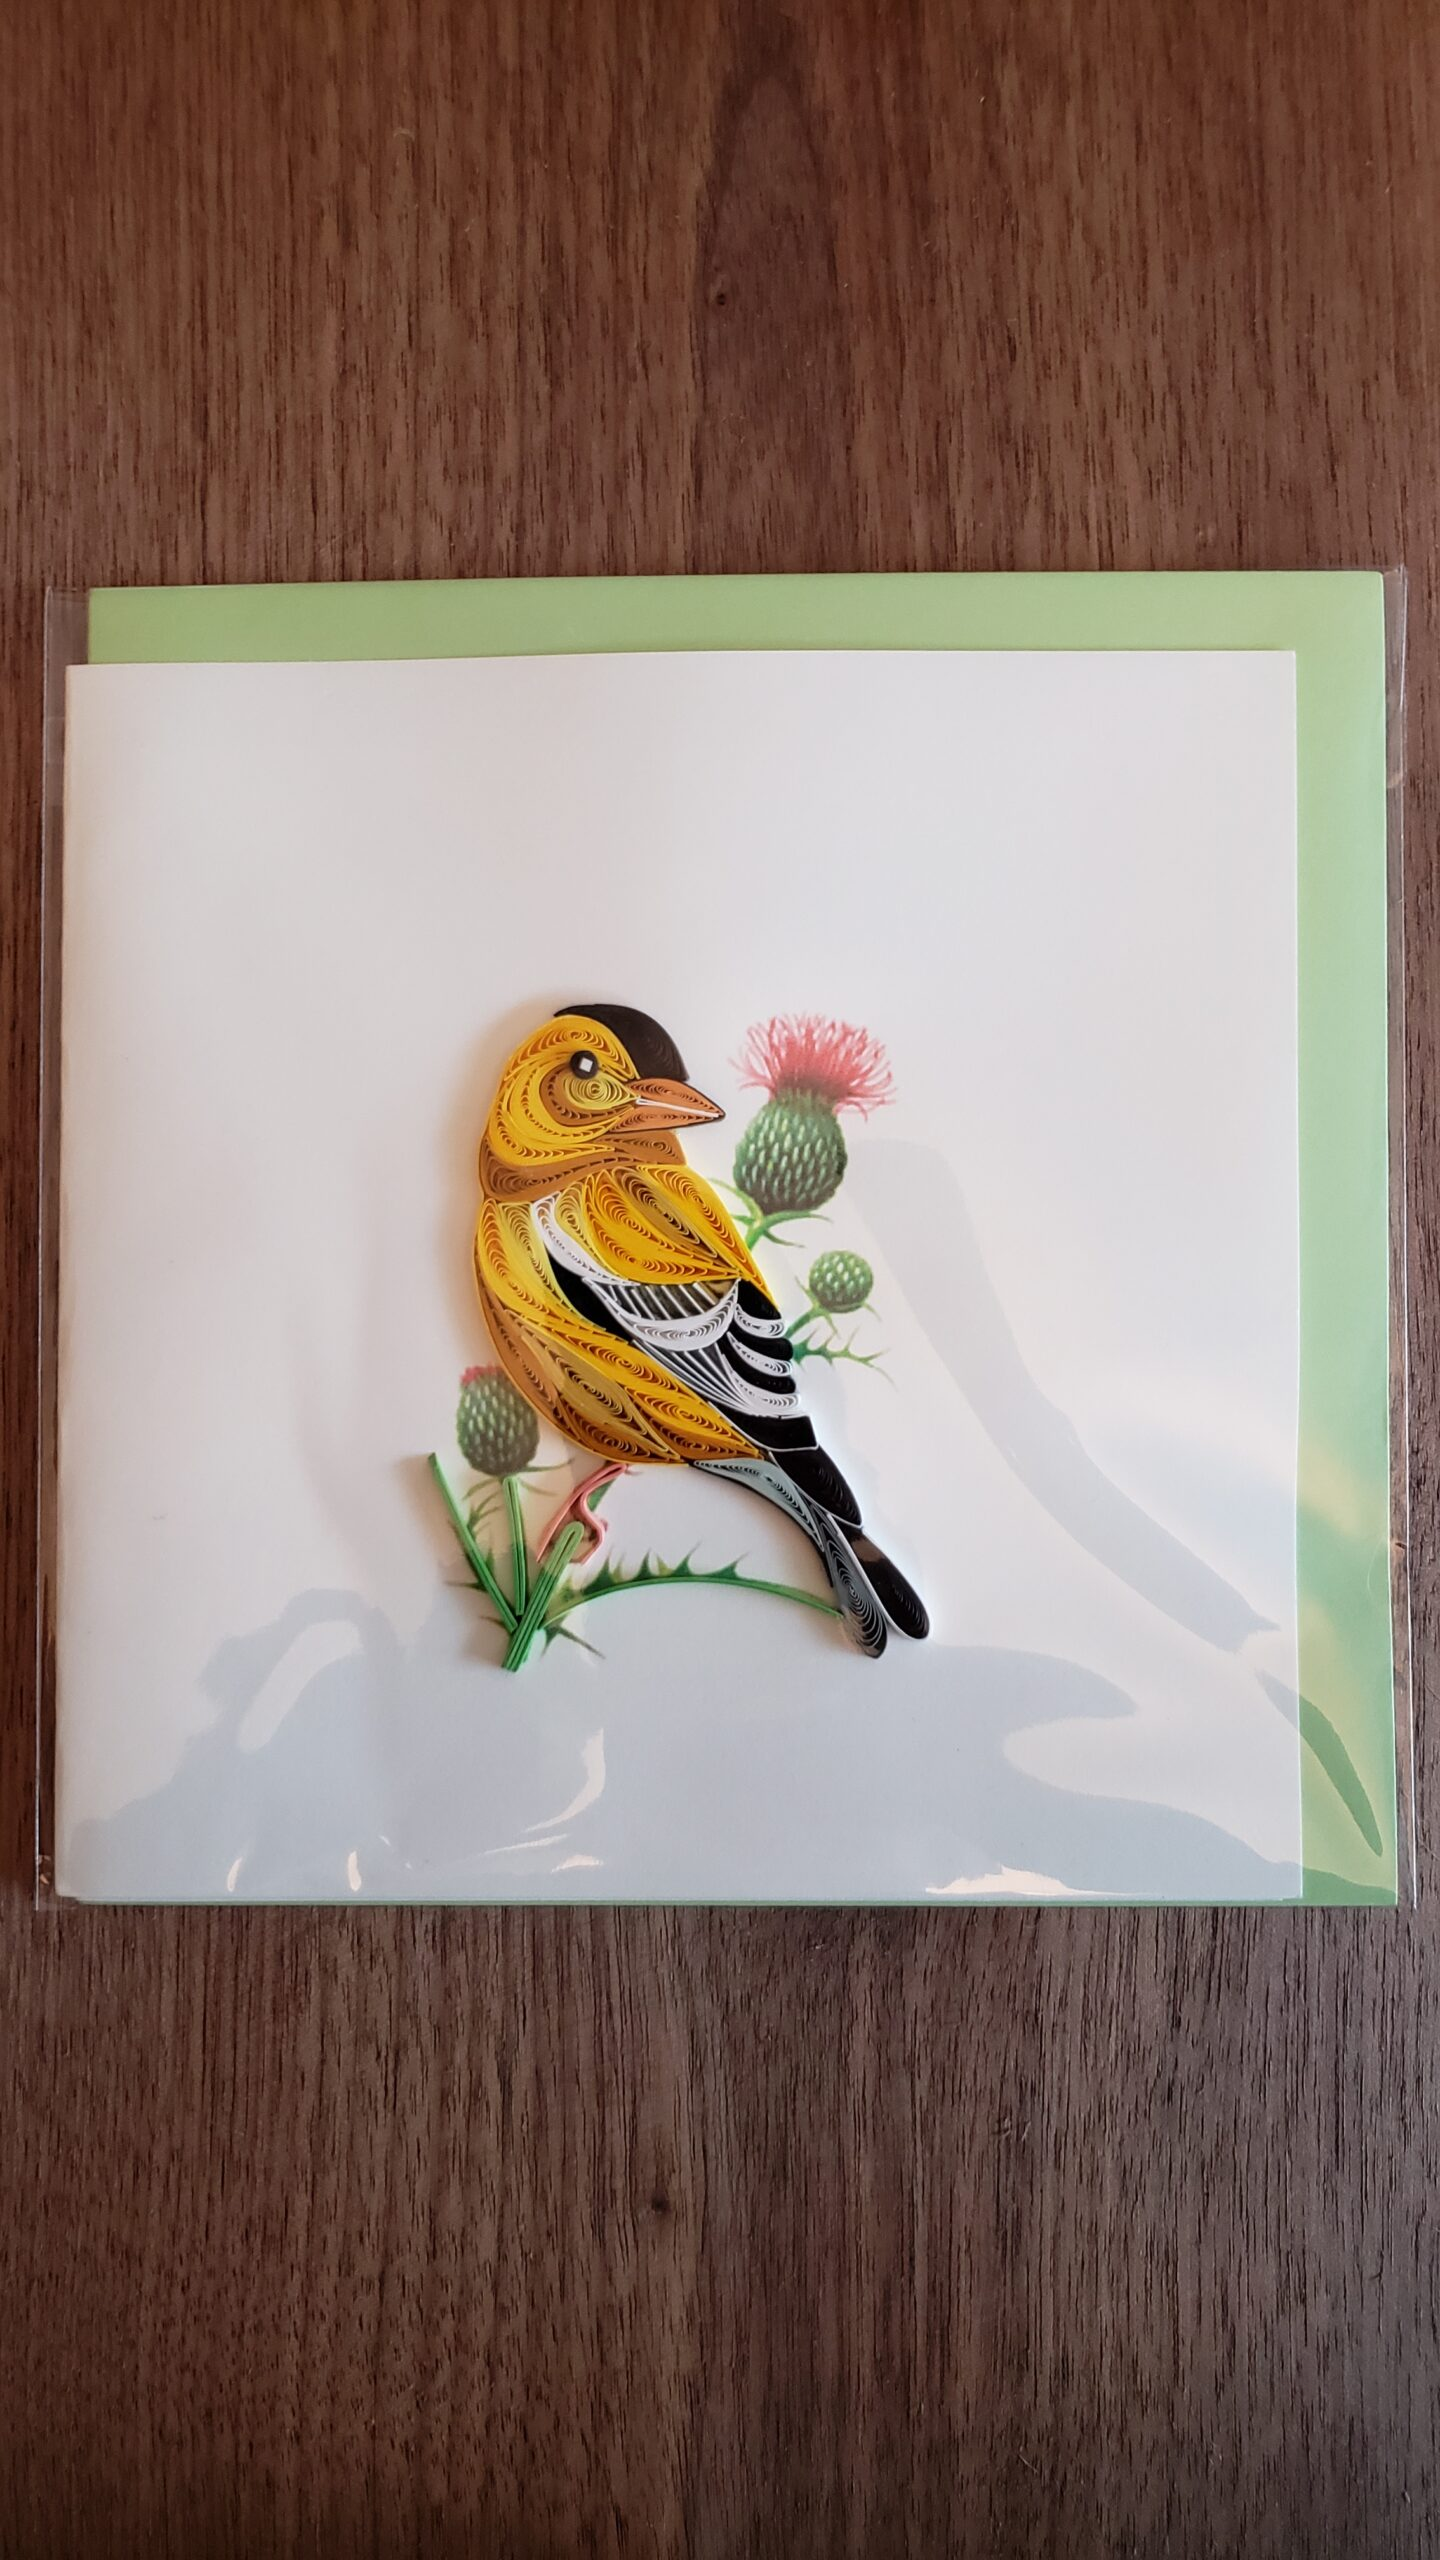 Eastern Goldfinch Card 6 in. x 6 in.